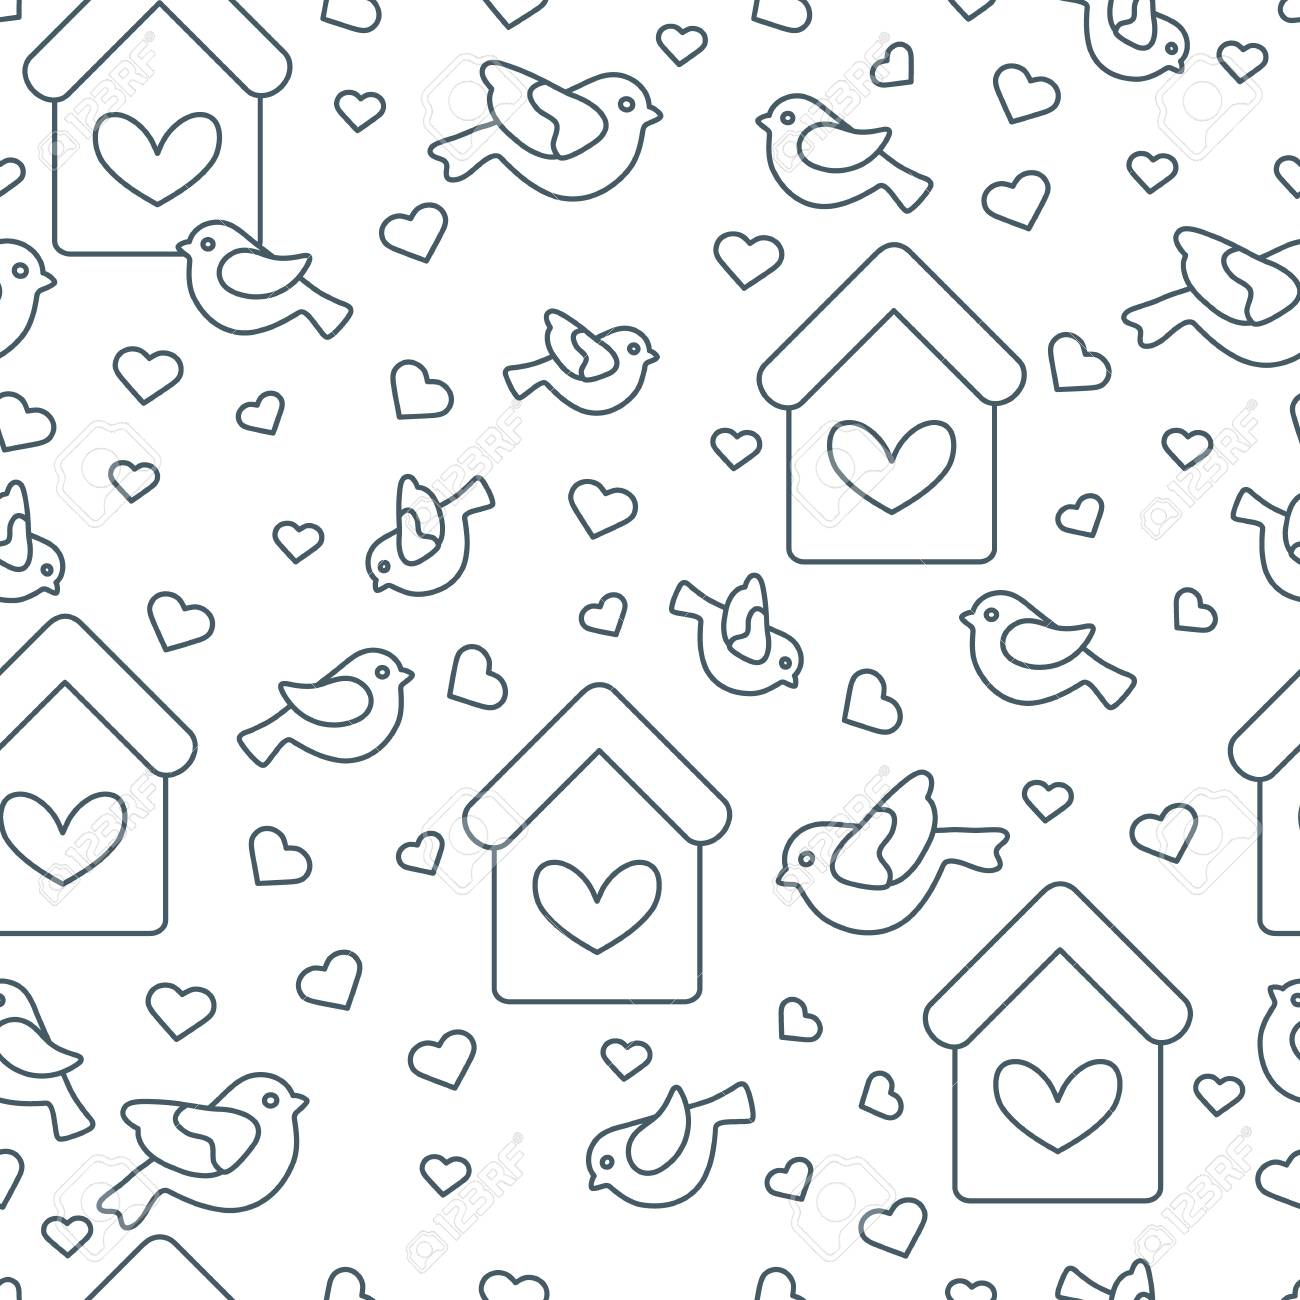 Cute Seamless Pattern With Birds Birdhouses And Heartstemplate